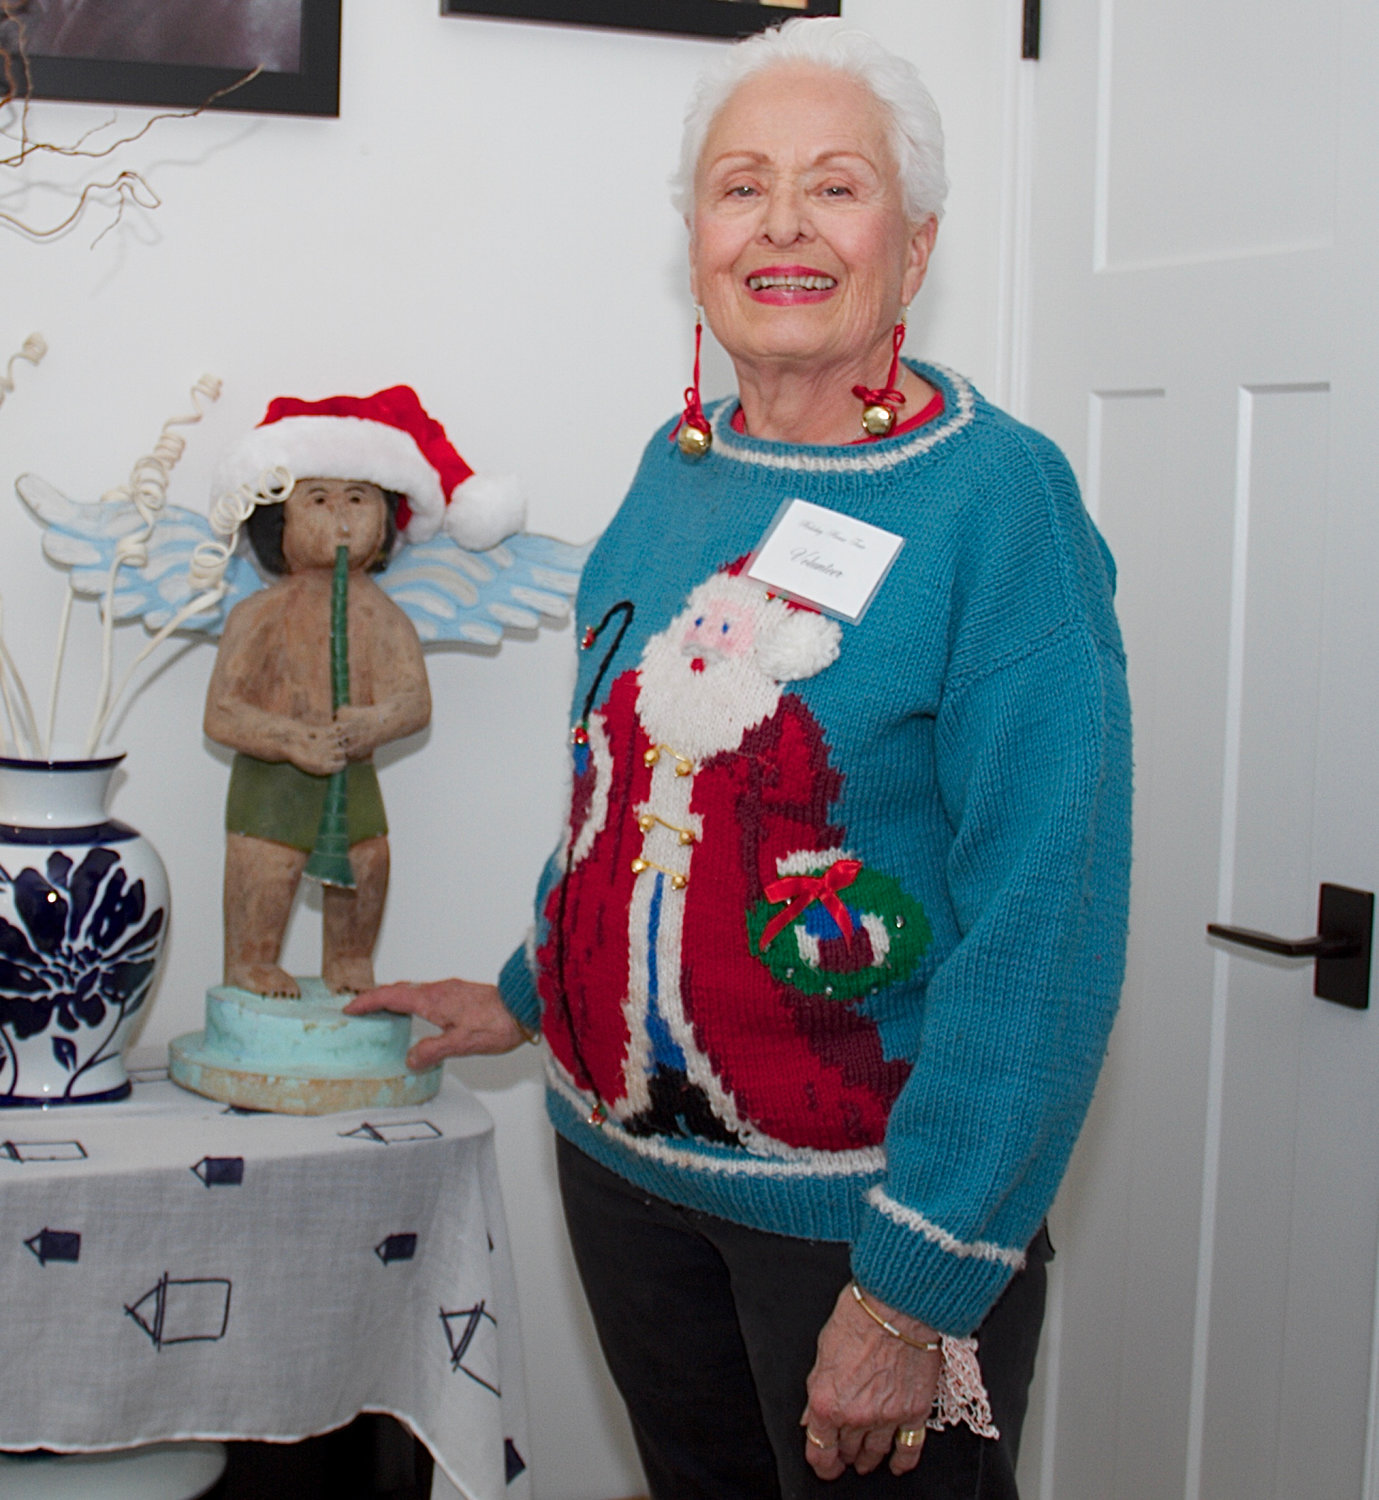 Volunteer Robbie Nuttall spread holiday cheer with her jingle bell earrings and Santa sweater.